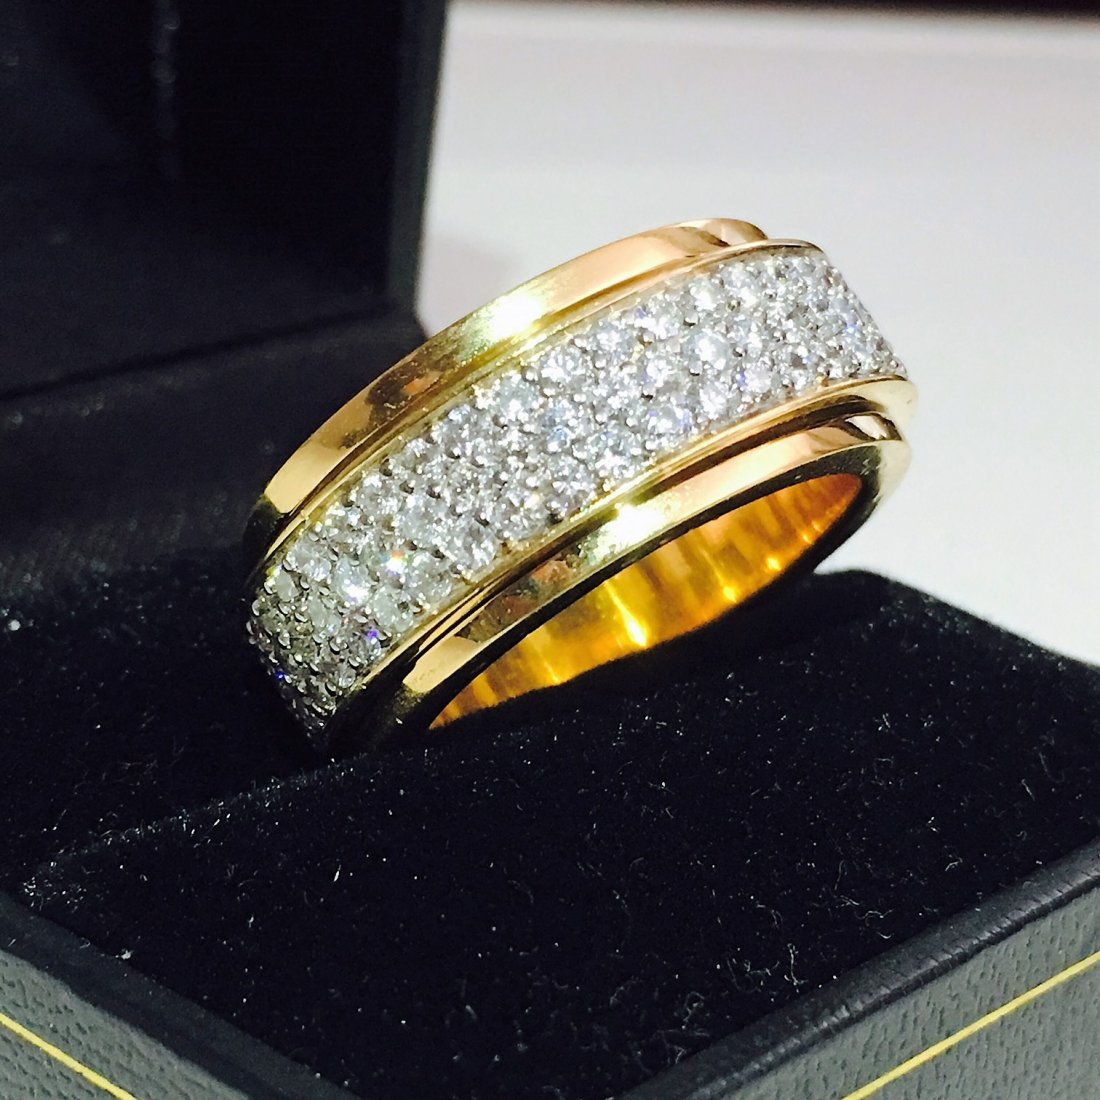 18k Gold 4.50 Carat Diamond Ring